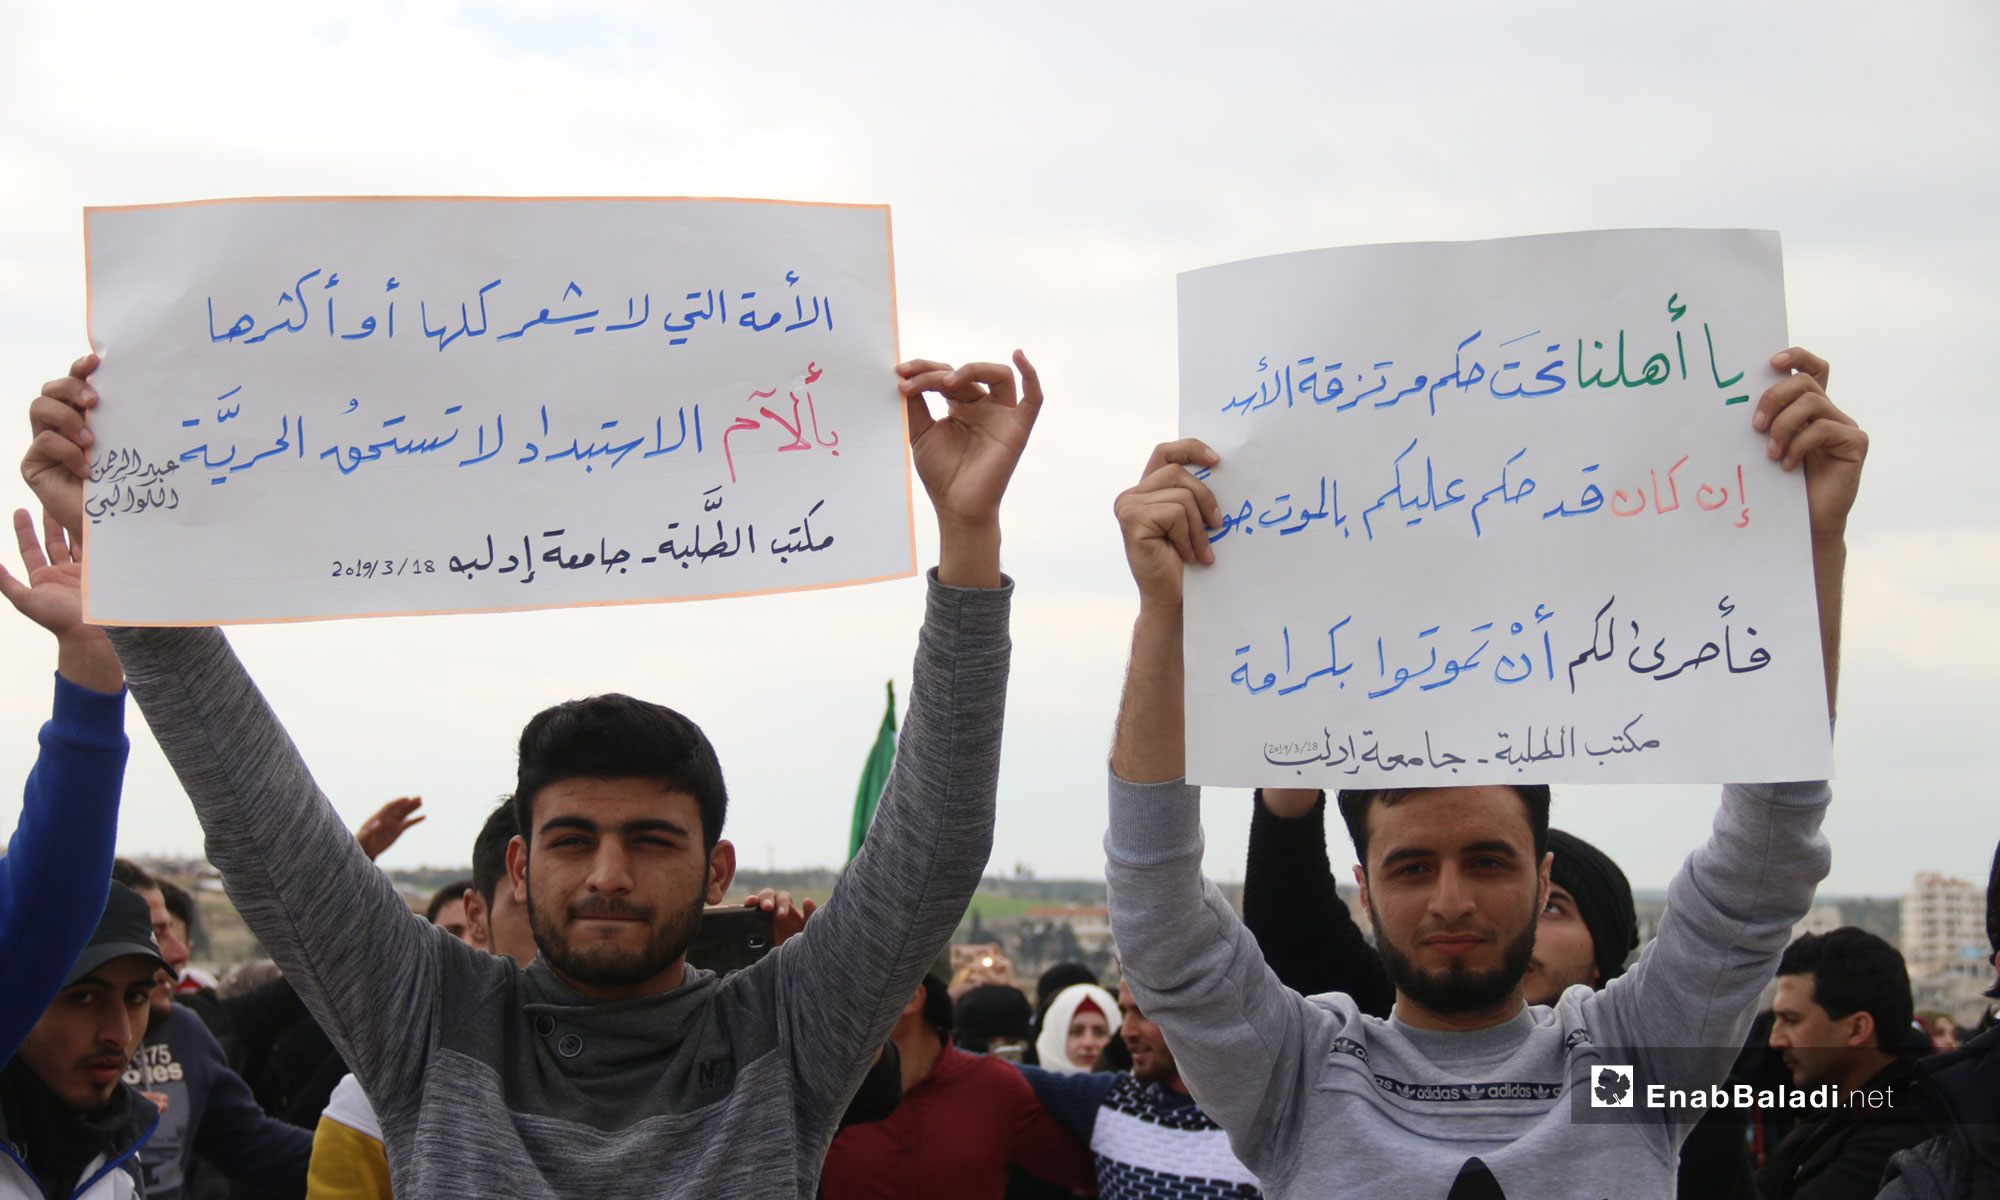 """A demonstration by Idlib University students on the Syrian revolution's eighth anniversary. The signs say:  To our people under the power of Assad's mercenaries-If you are sentenced to die of starvation-It is better that you die in dignity- Students Office, Idlib University/ """"A nation, whose part and whole, does not feel the suffering of oppression is not worthy of freedom"""" Abd al-Rahman al-Kawakibi - Students Office, Idlib University  – March 18, 2019 (Enab Baladi)"""